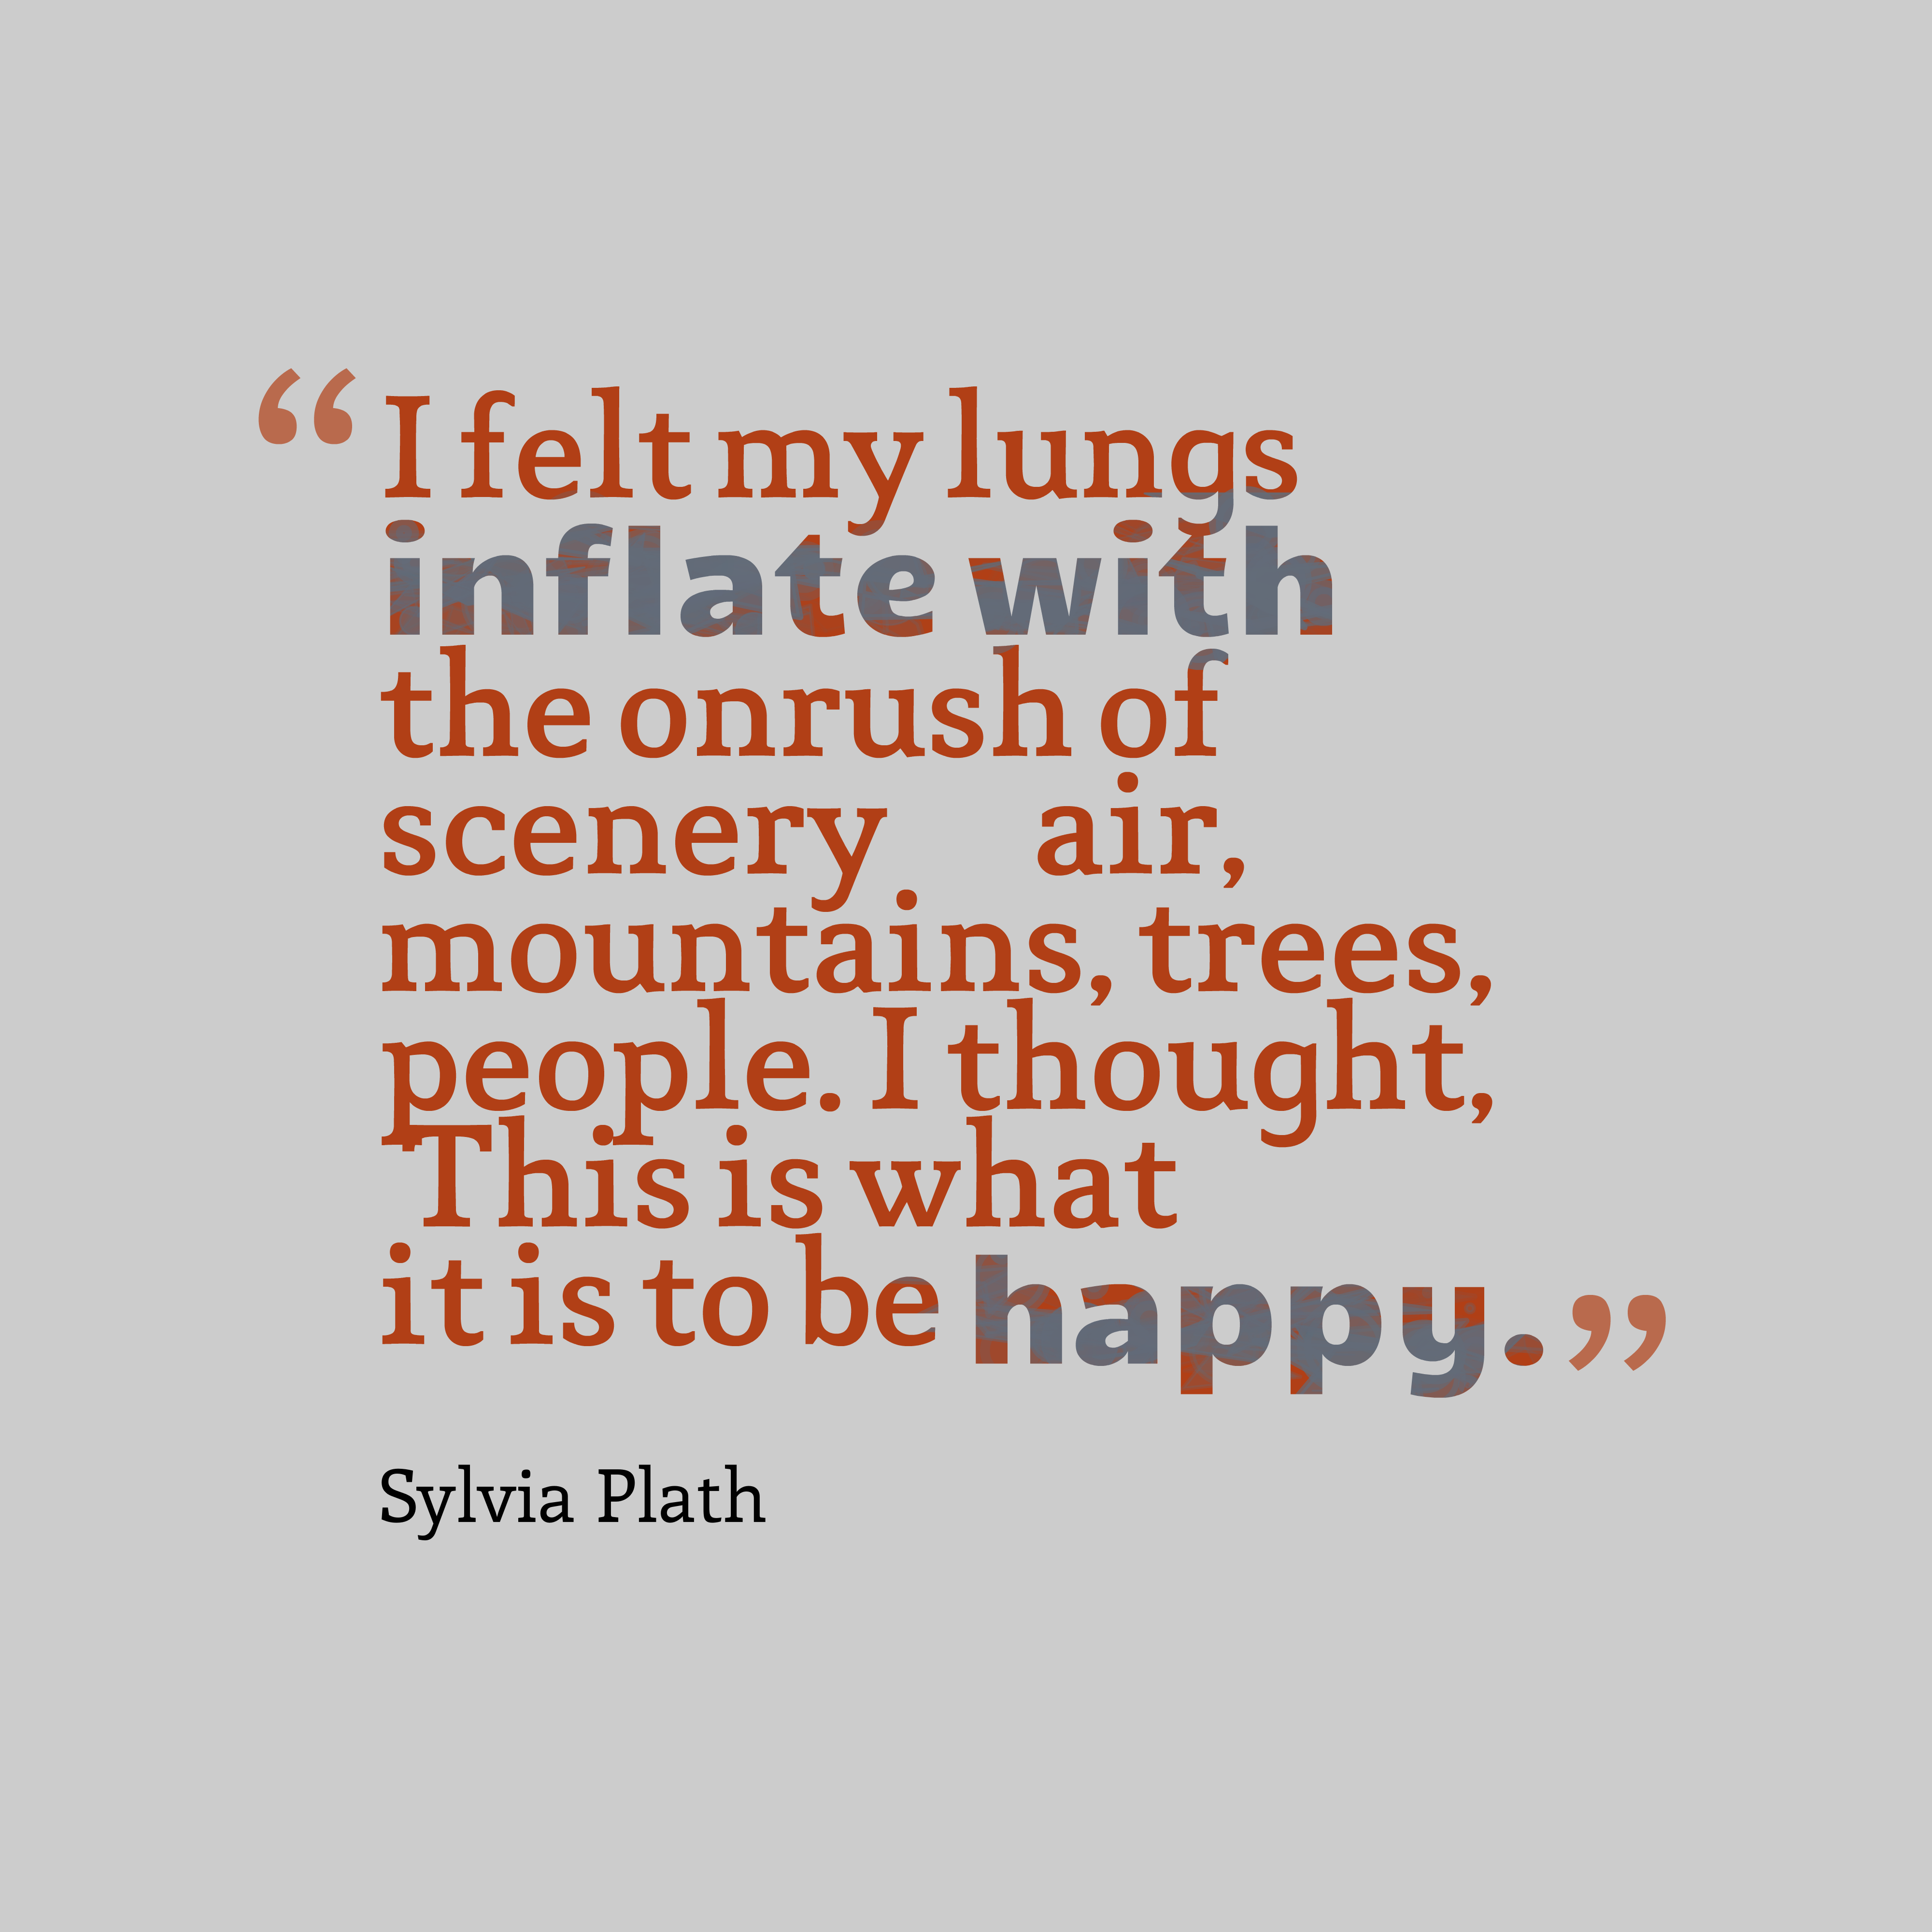 Sylvia Plath Quote About Nature